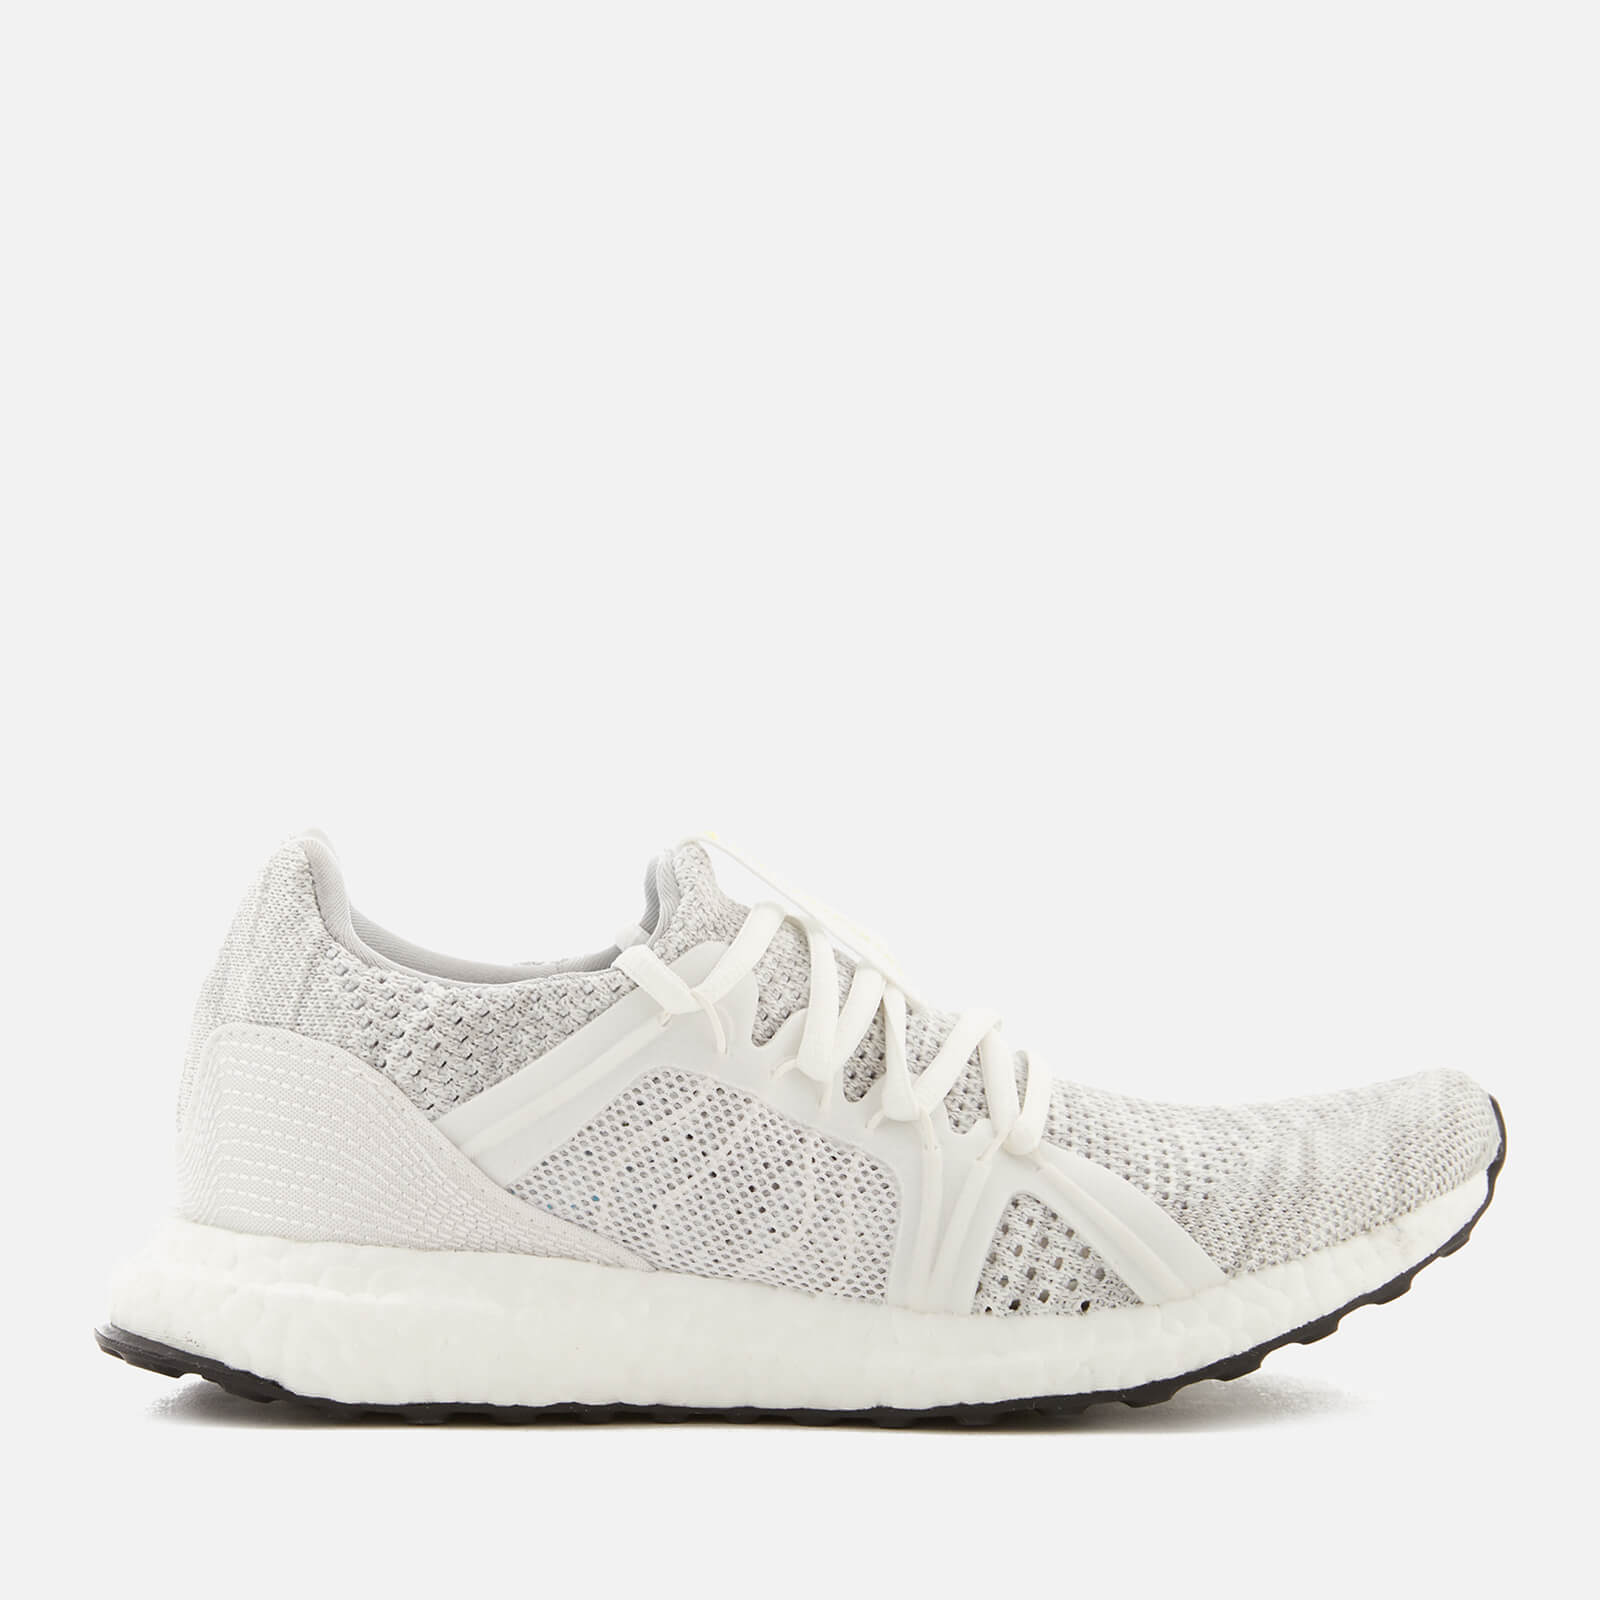 48feb25fd adidas by Stella McCartney Women s Ultraboost Parley Trainers - Stone Core  White Mirror Blue - Free UK Delivery over £50